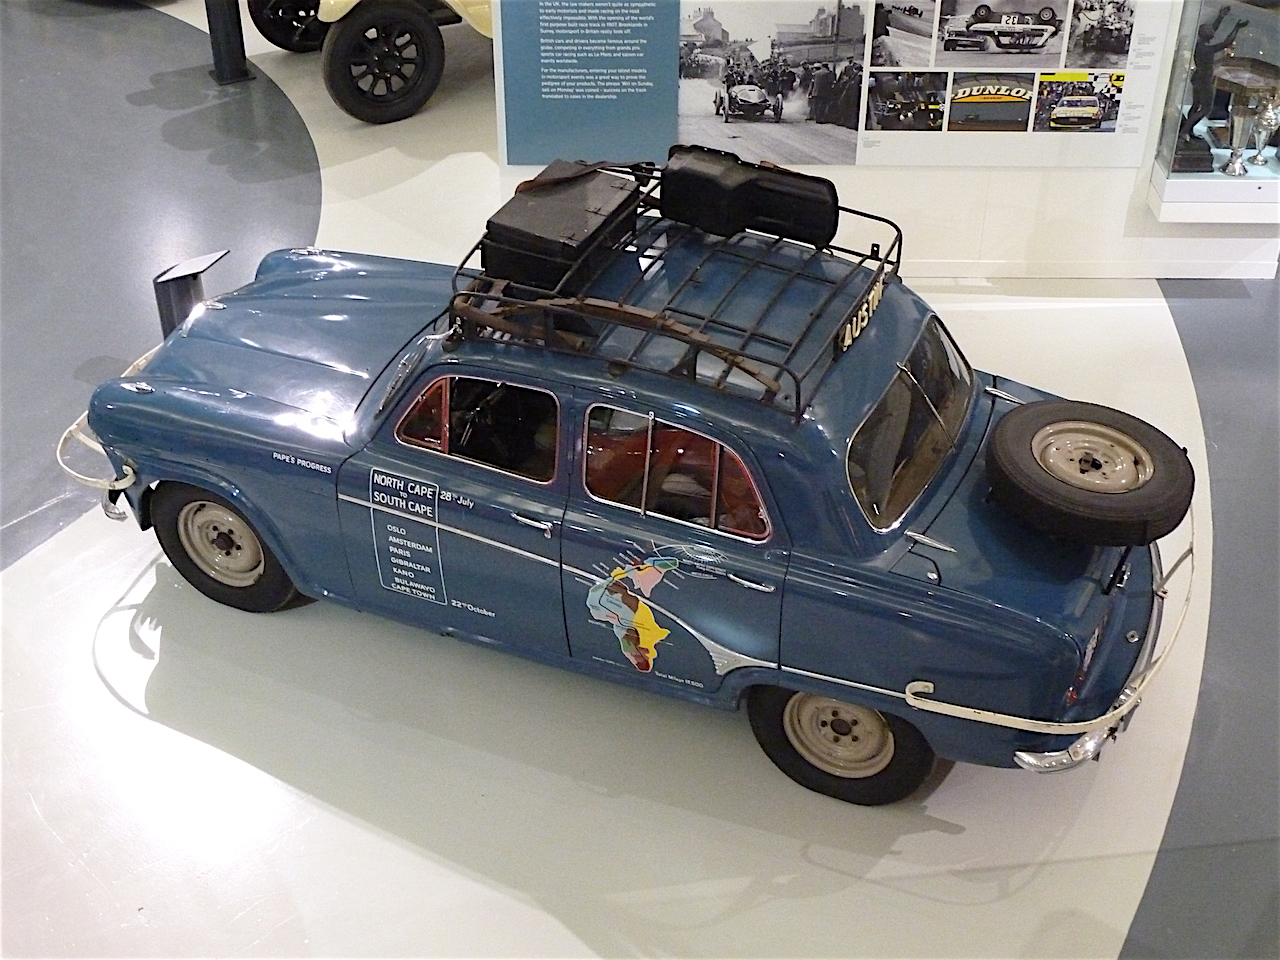 'Landmark' cars abound; this is THE Austin A90 (1955) that Richard Pape drove 17,500 miles from North Cape in Norway to Cape Town, South Africa, the first ever journey on this route. Amazing. If only cars could talk...